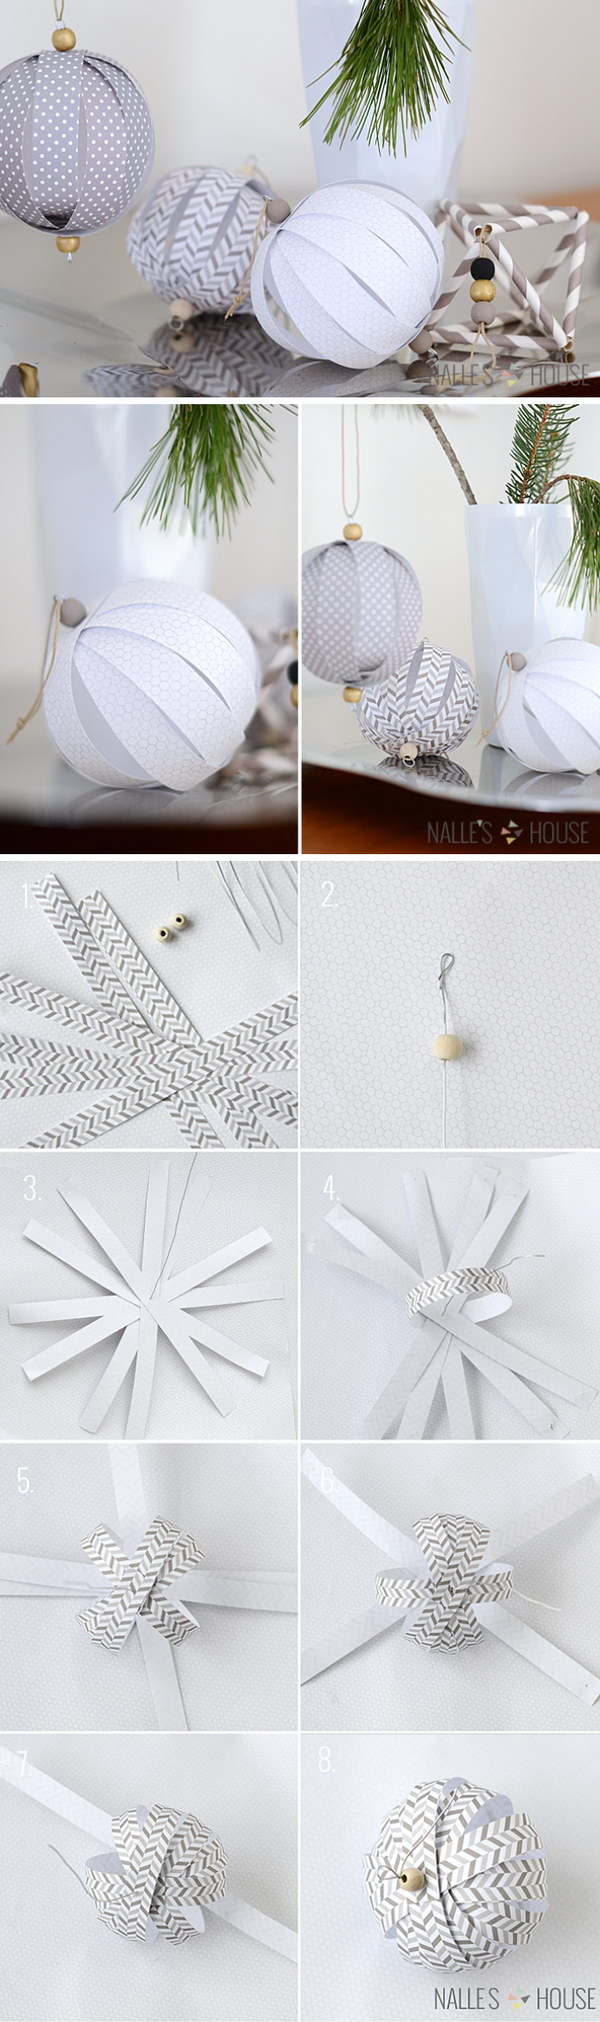 DIY Paper Ball Ornaments.